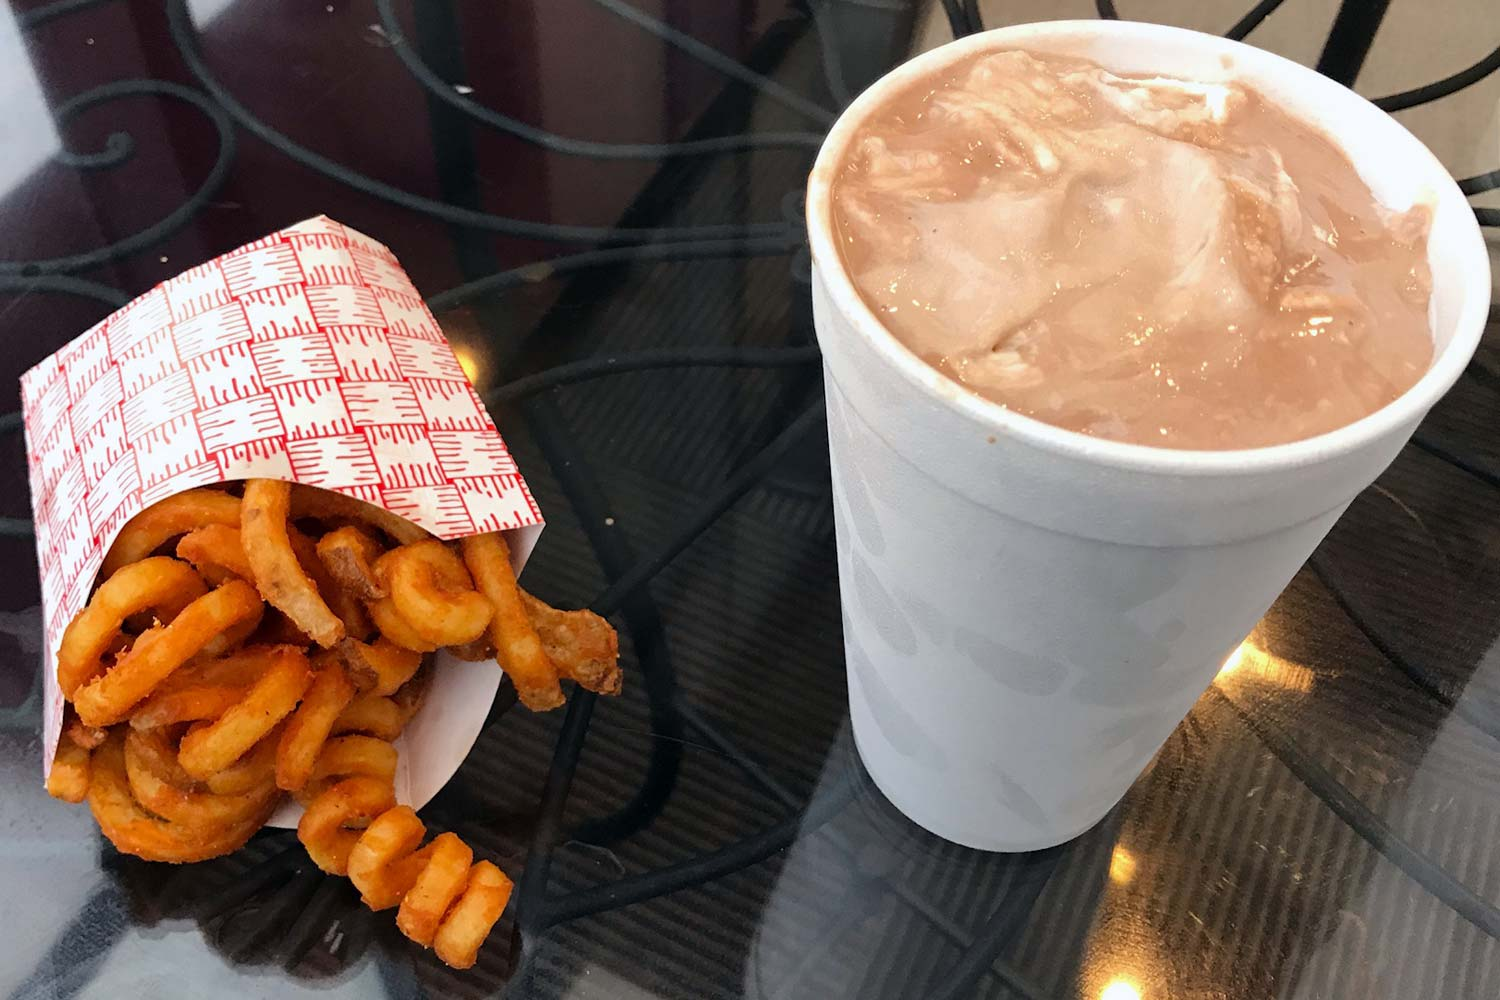 Sliced Deli curly fries and shake